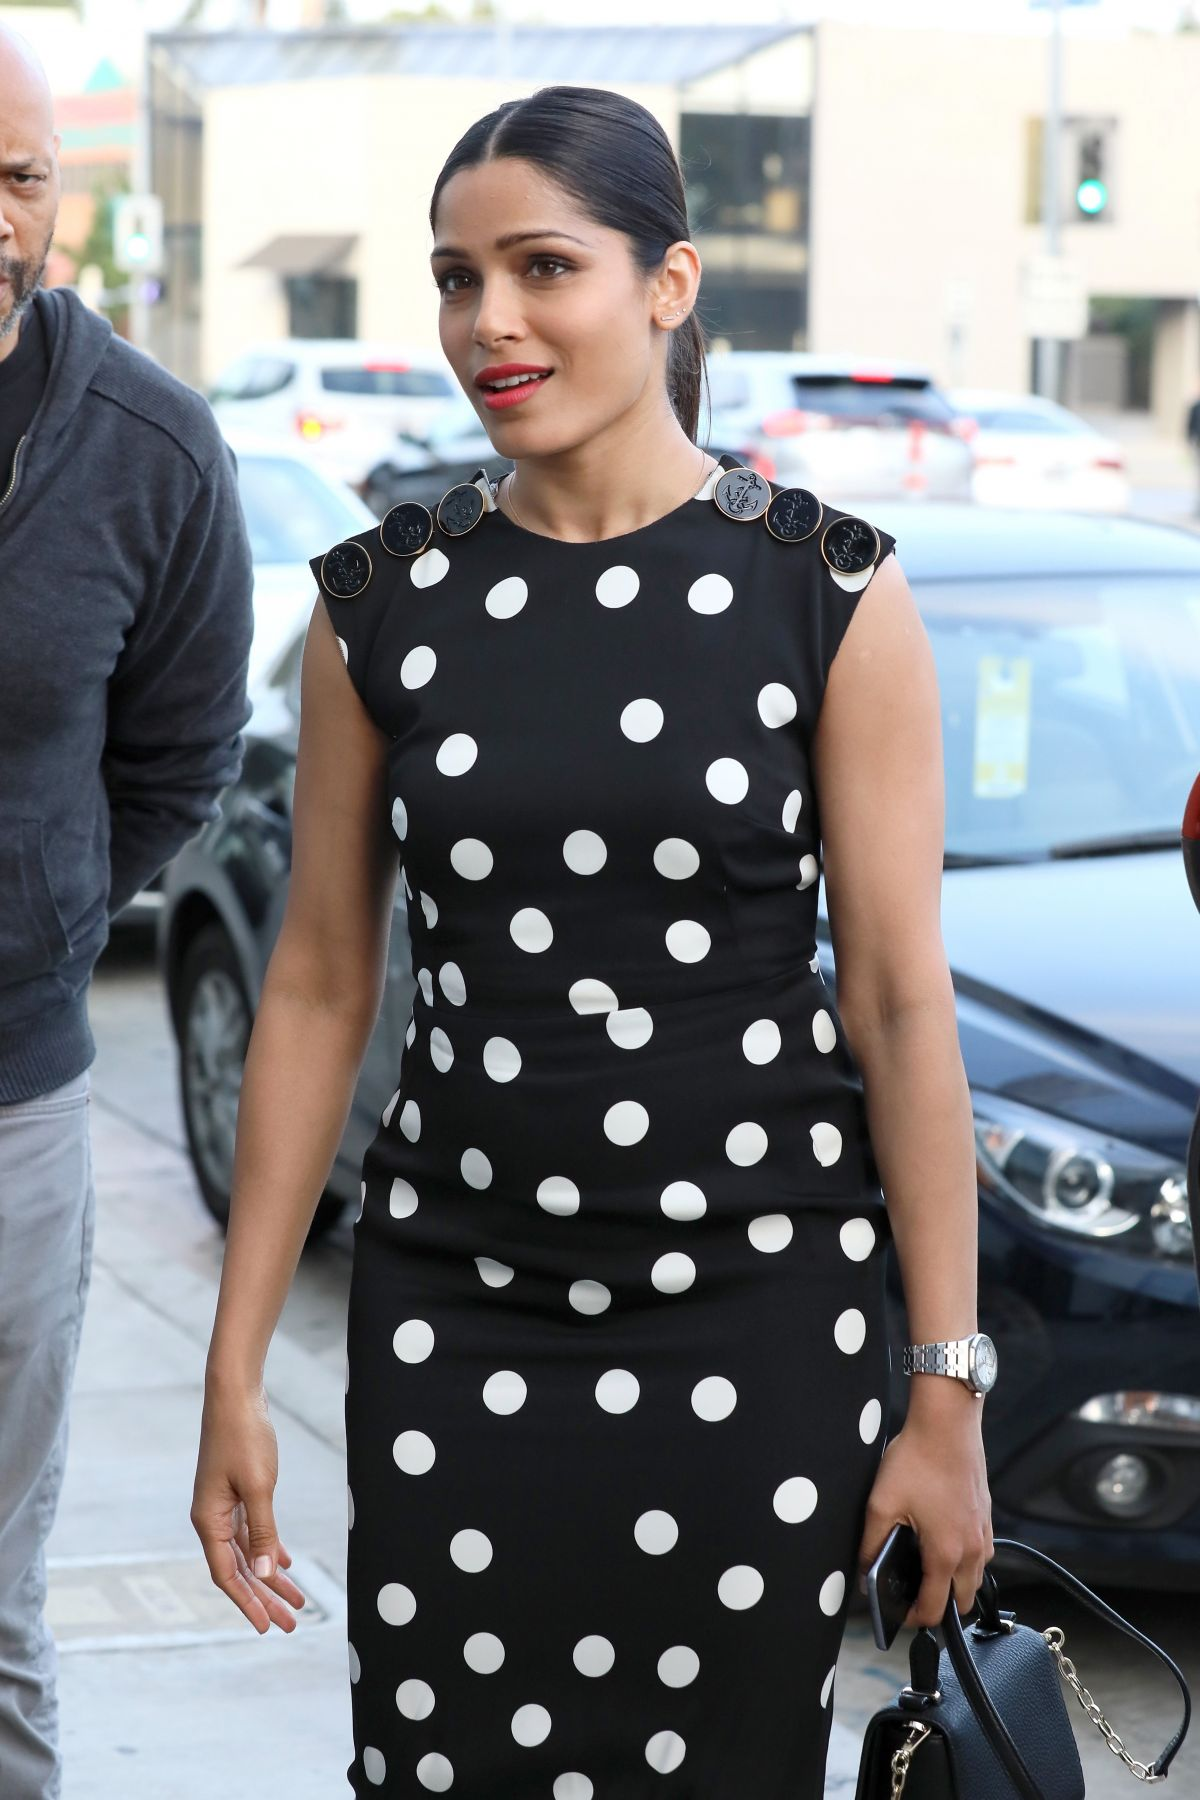 FREIDA PINTO at Catch LA in West Hollywood 06/05/2017